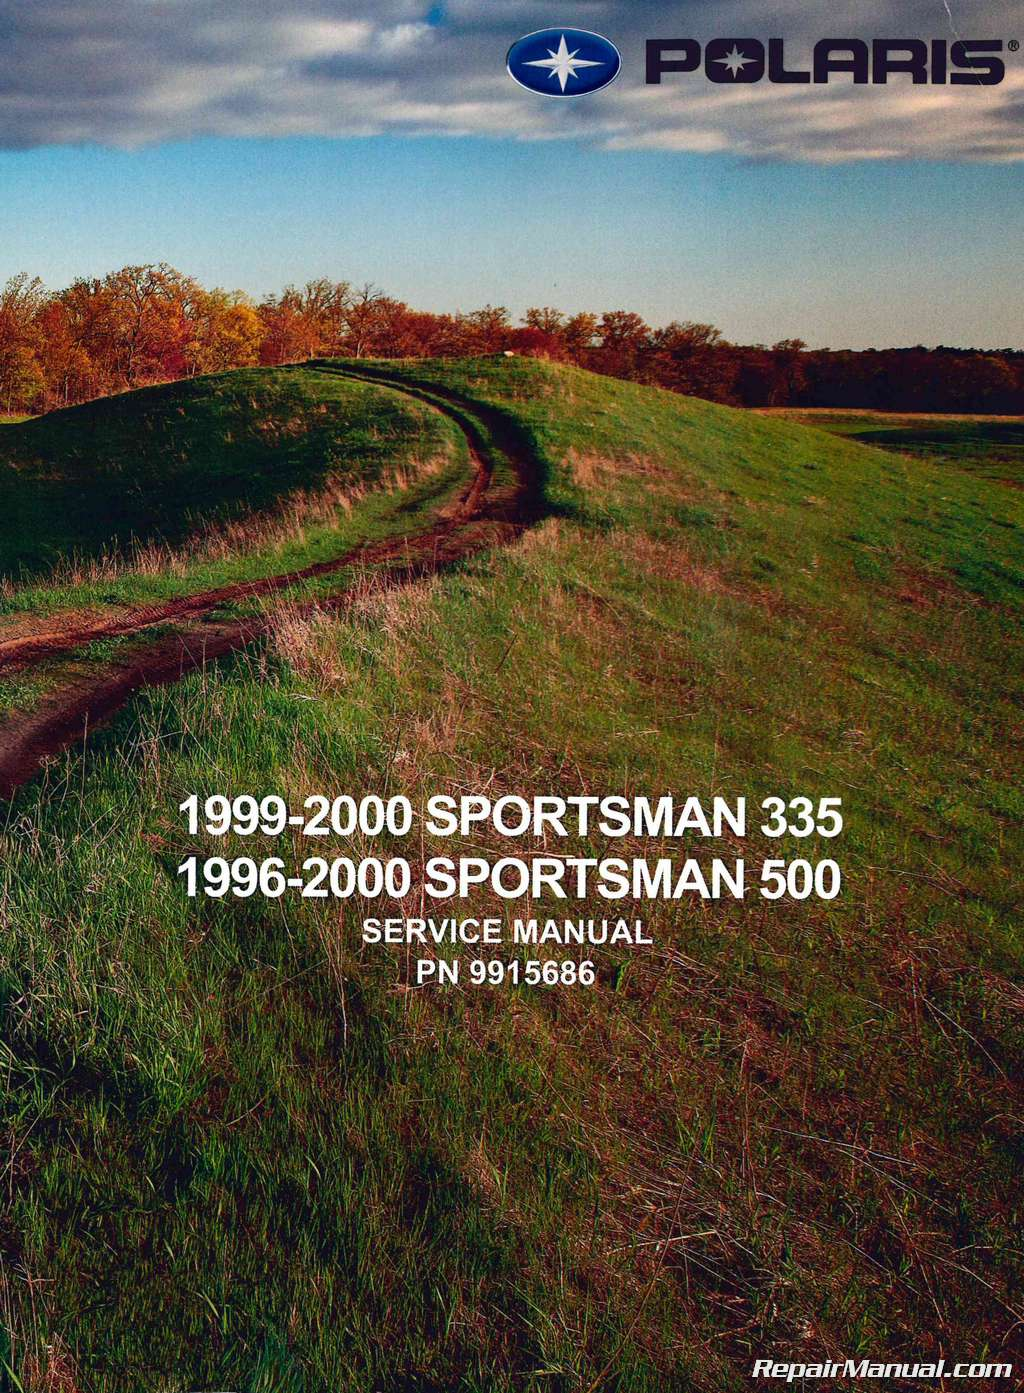 hight resolution of 1996 2000 polaris sportsman 335 500 atv service manual jpg